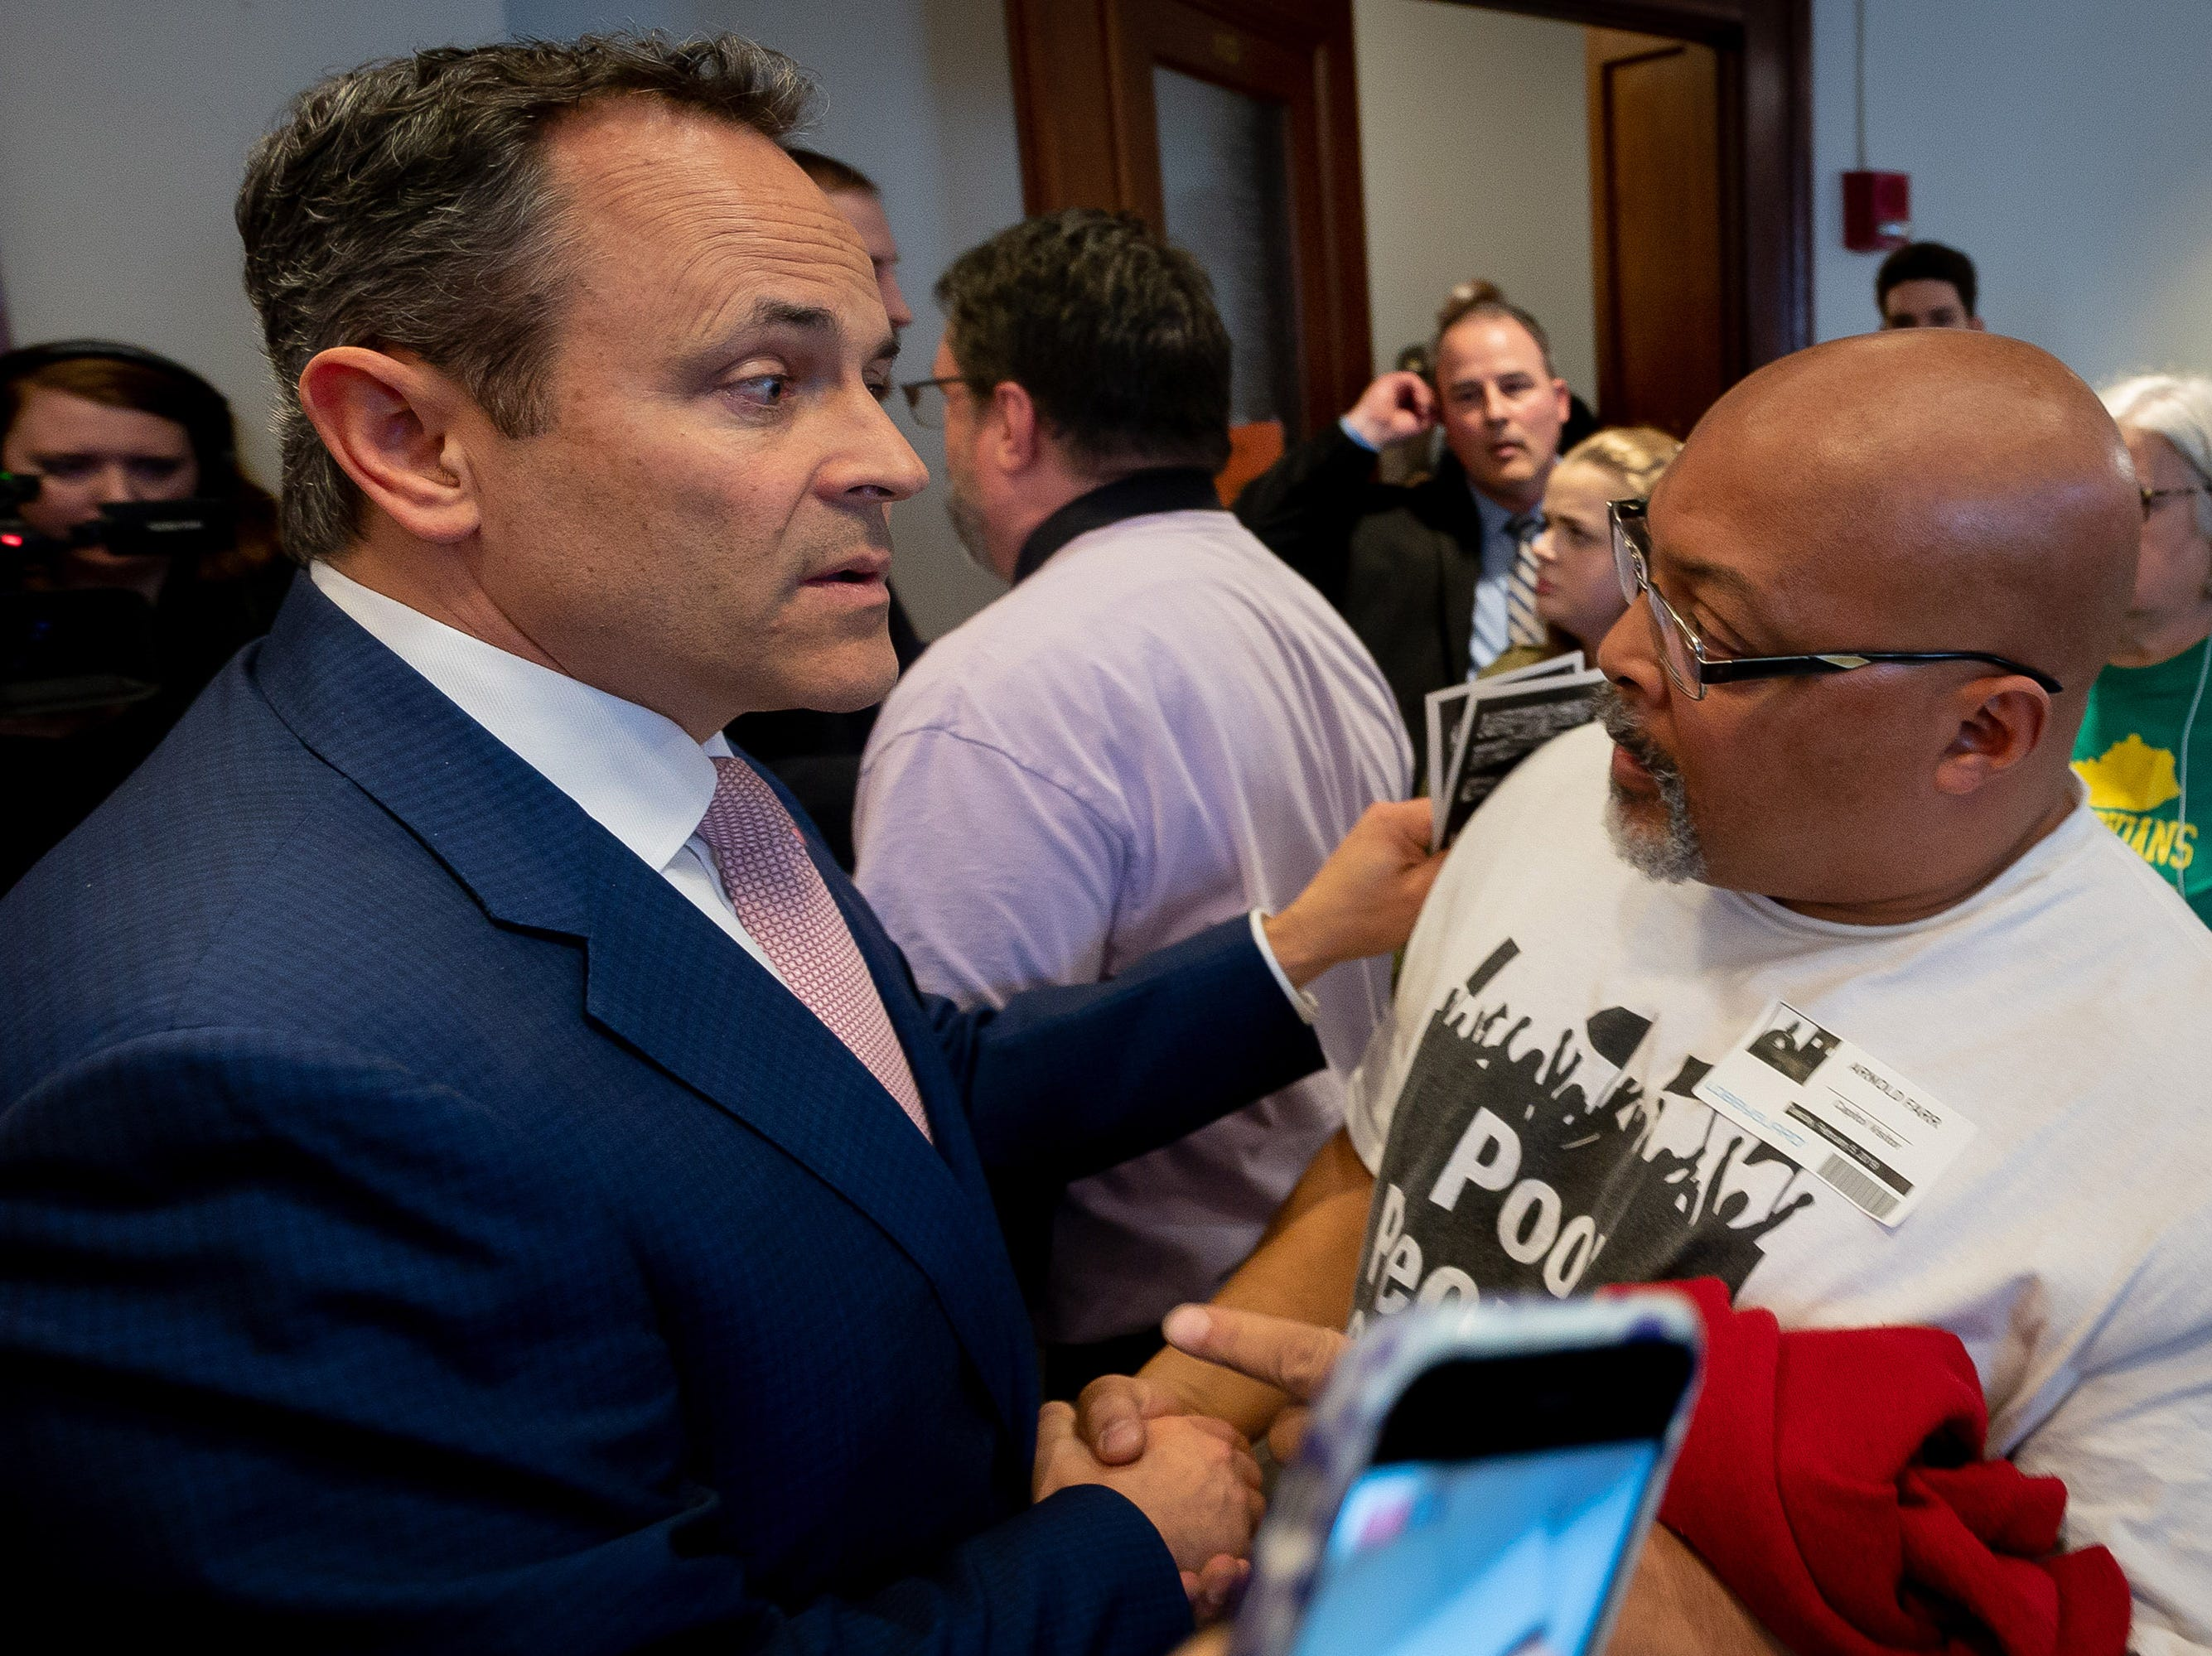 Gov. Matt Bevin shakes the hand of Arnold Farr after meeting with members of the Kentucky Poor People's Campaign at the Capitol building in Frankfort, Ky, Tuesday, Feb. 5, 2018